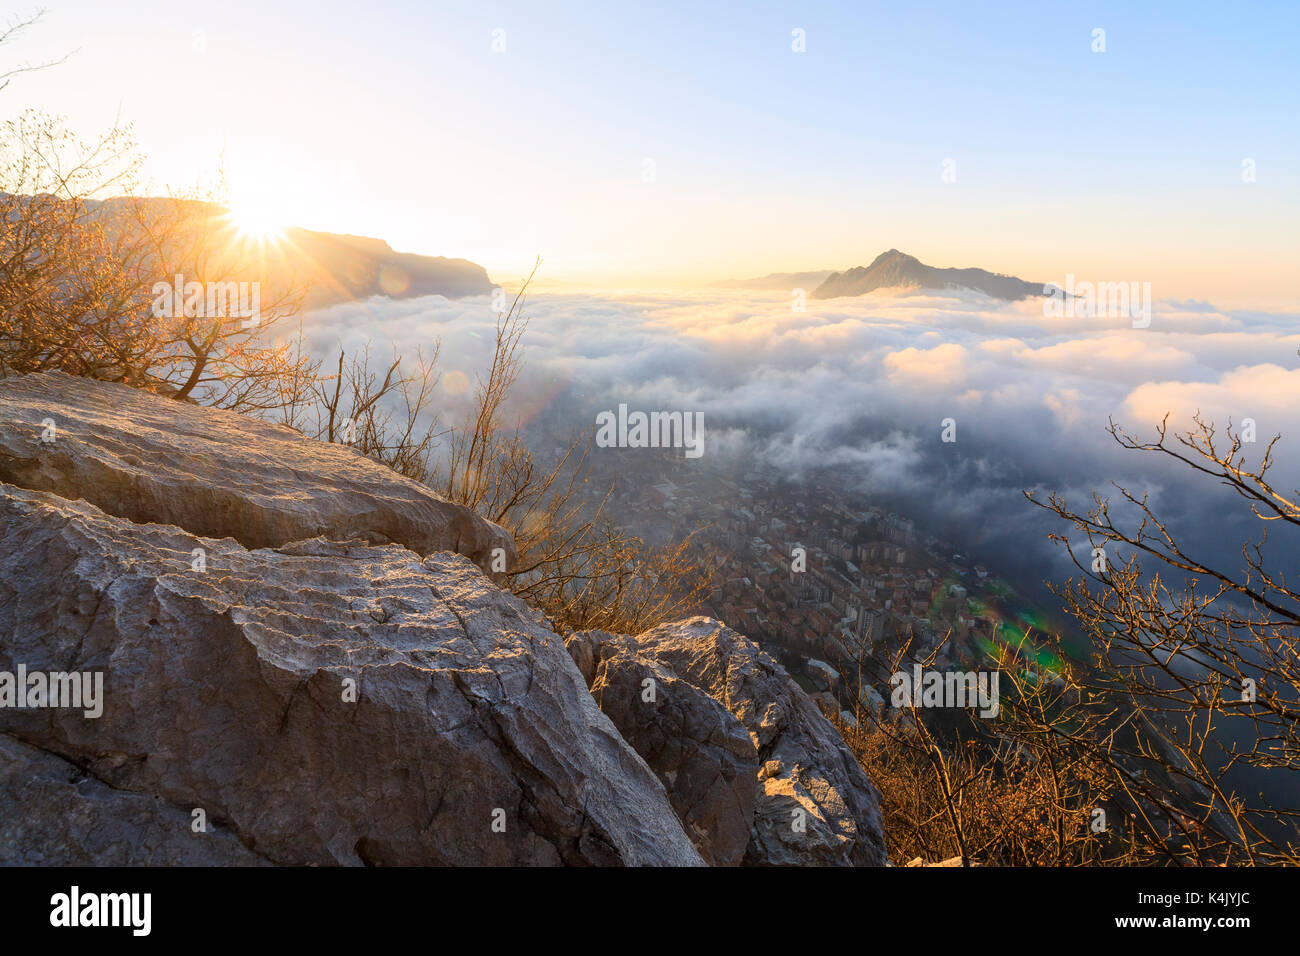 Sun and mist above the city of Lecco seen from Monte San Martino, Province of Lecco, Lombardy, Italy, Europe - Stock Image